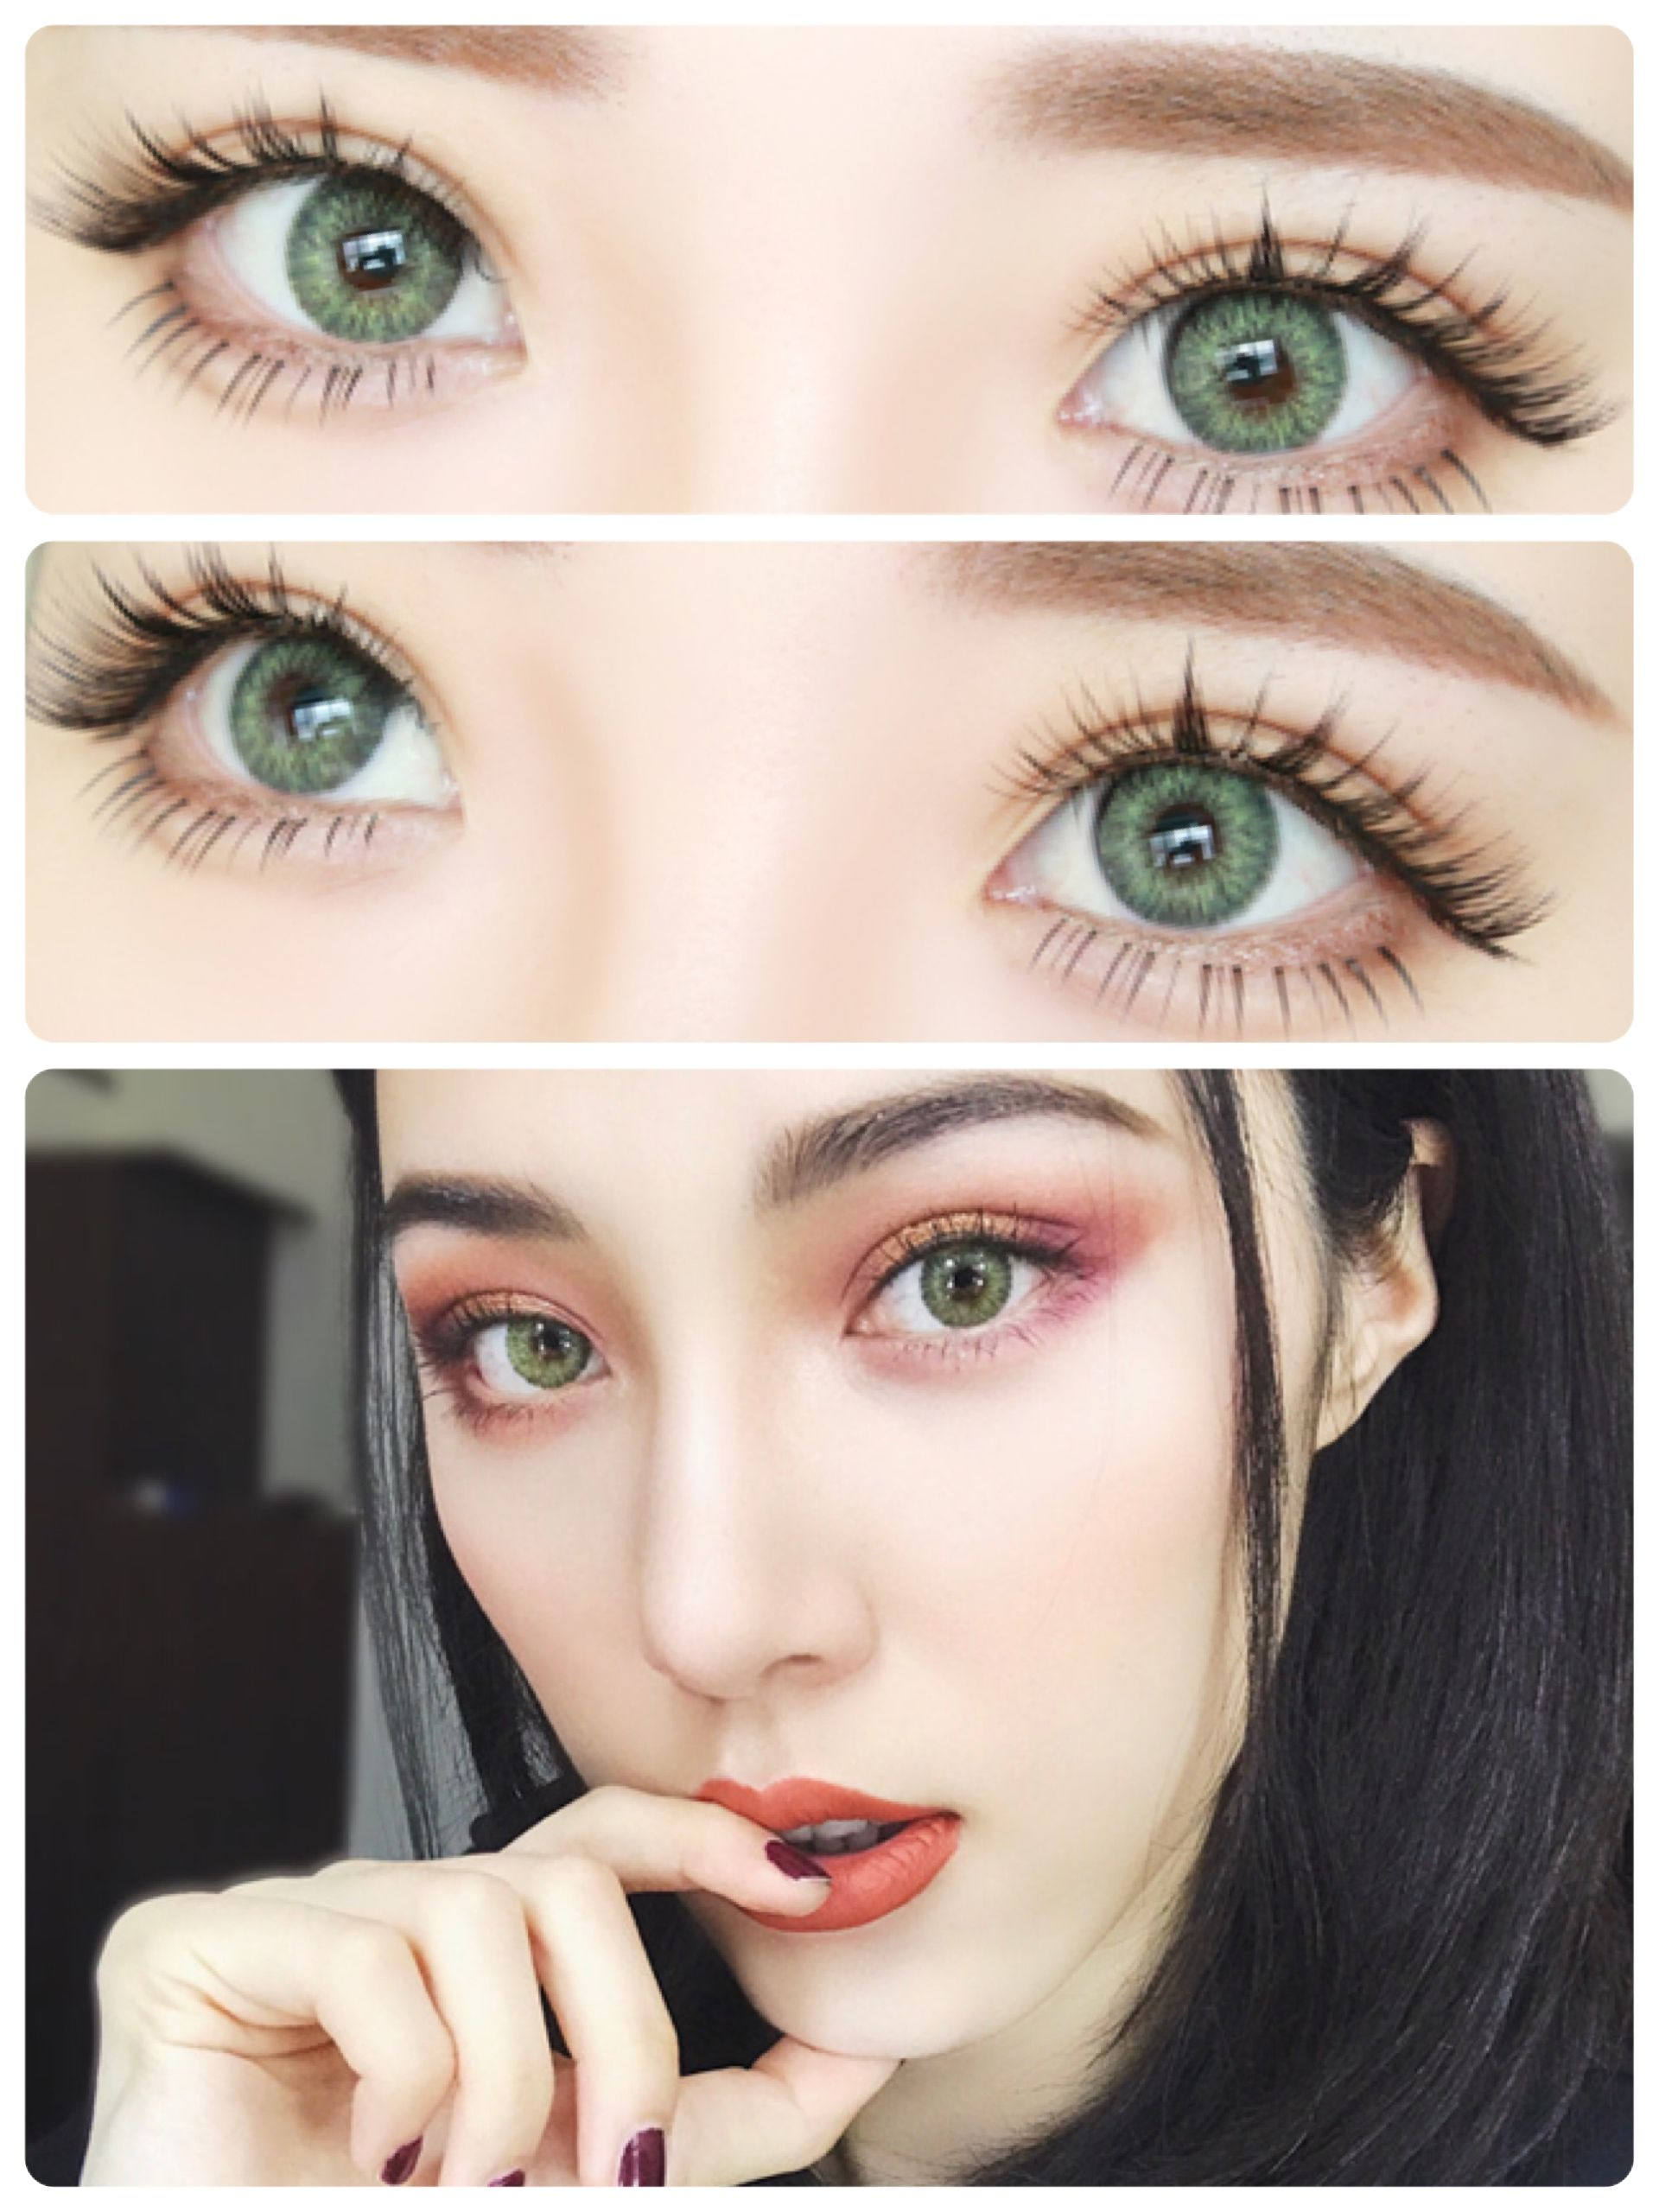 8c048ce0d20 Freshlook colored contact lenses from eyecandys. These lenses are great for  dark or black eyes